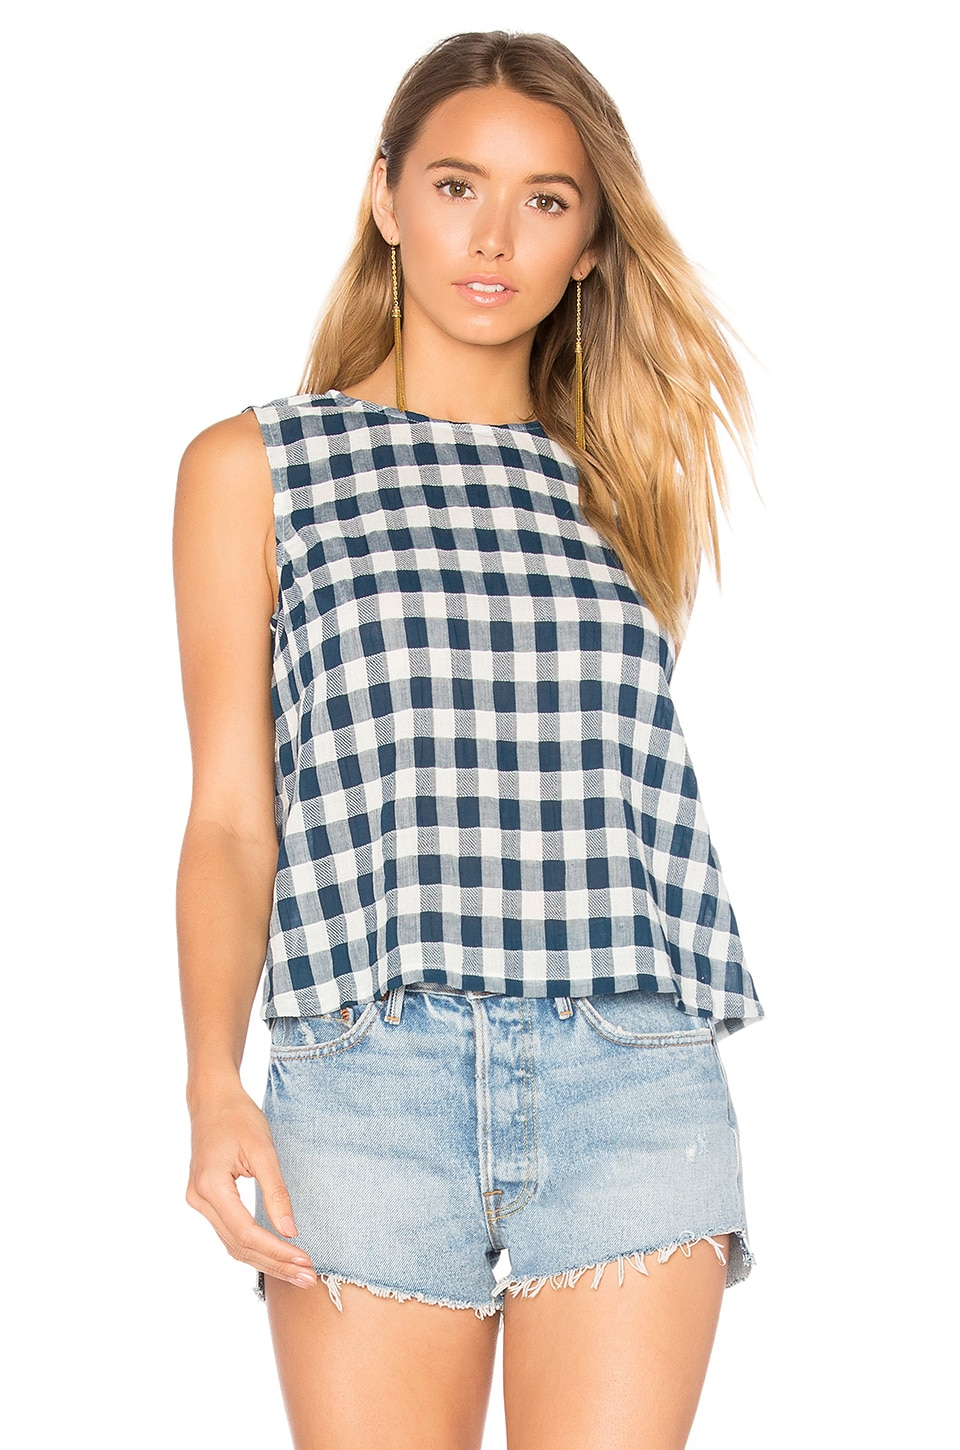 The Boxy Cropped Tank by Current/Elliott